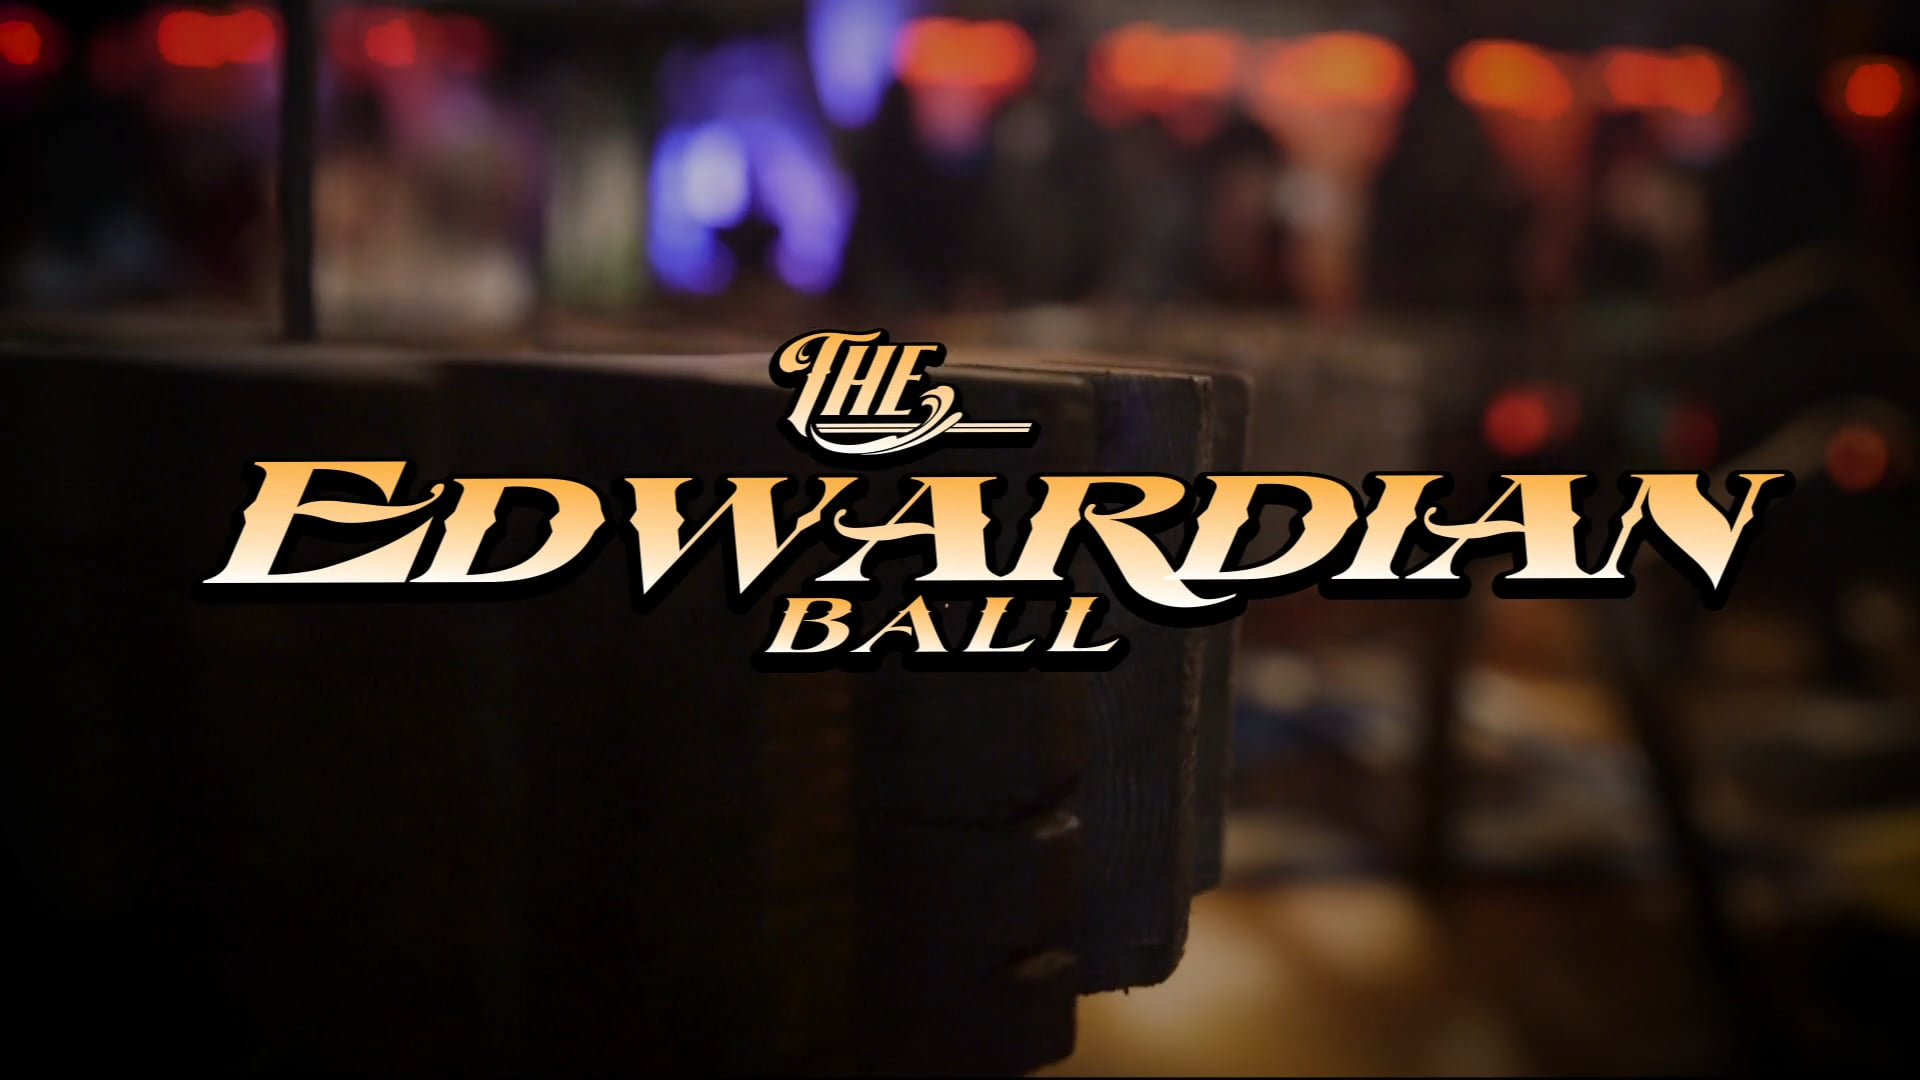 The Edwardian Ball and World's Faire 2018. Extended Version